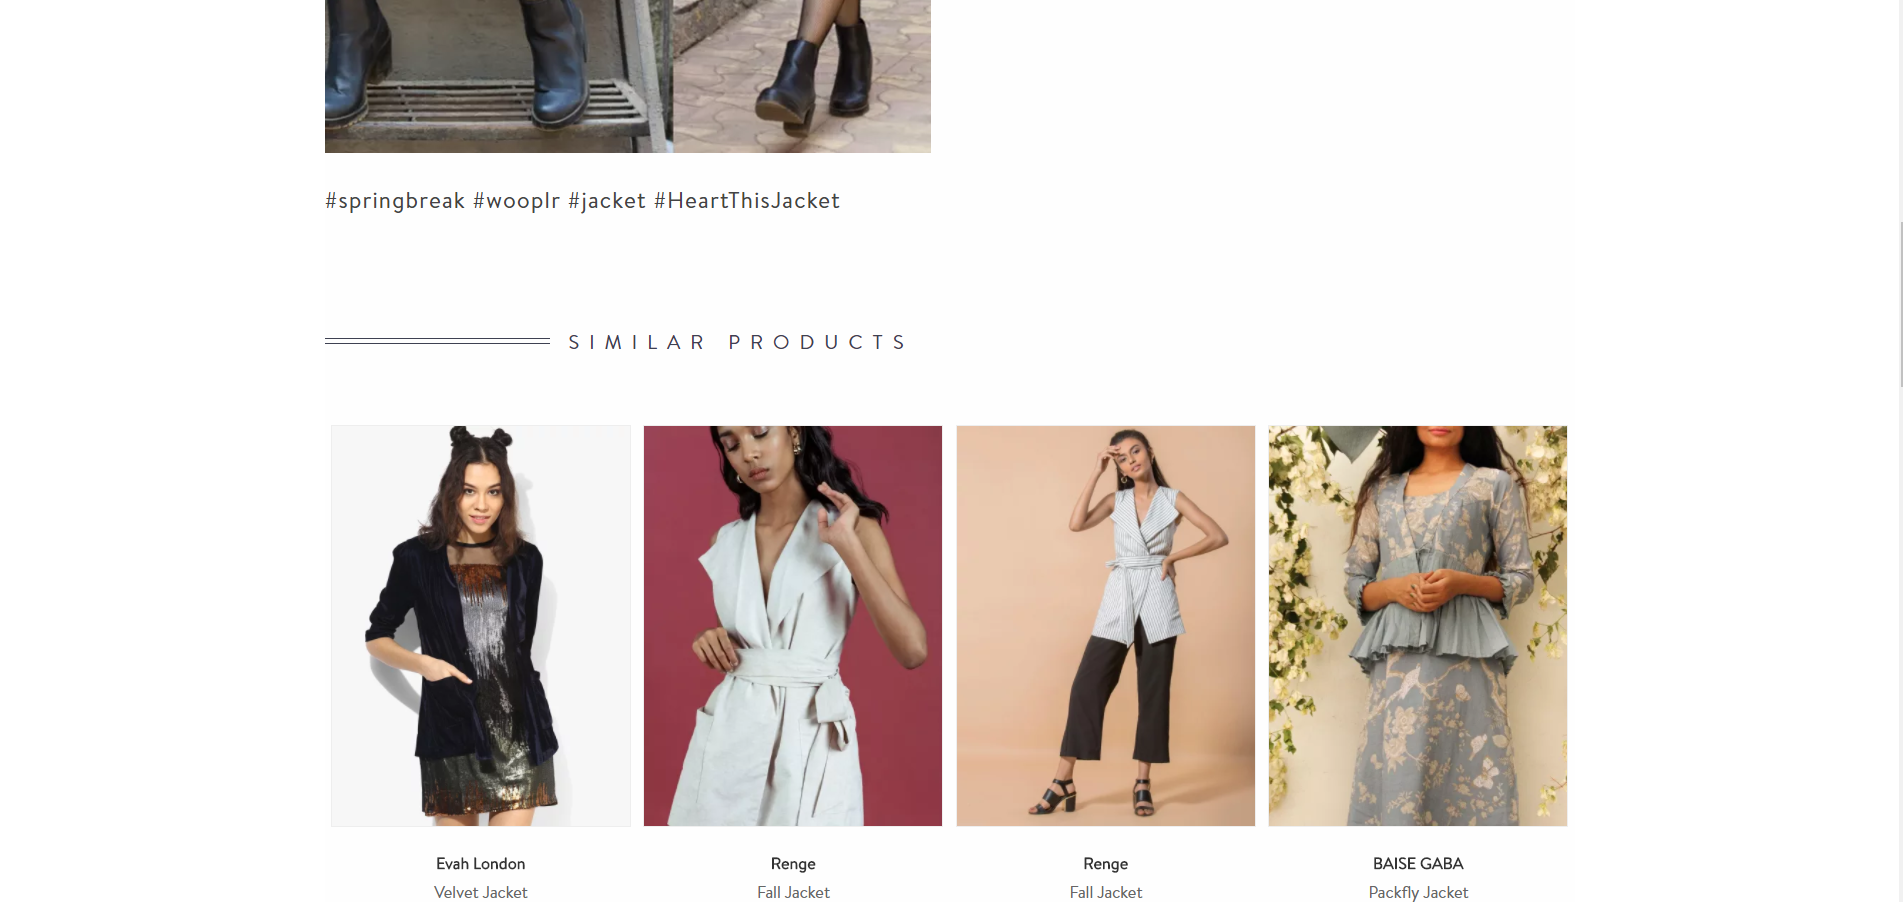 Megha Ray megha_ray My Fashion Collections Shop the Latest Fashion Trends Online (4) - copia